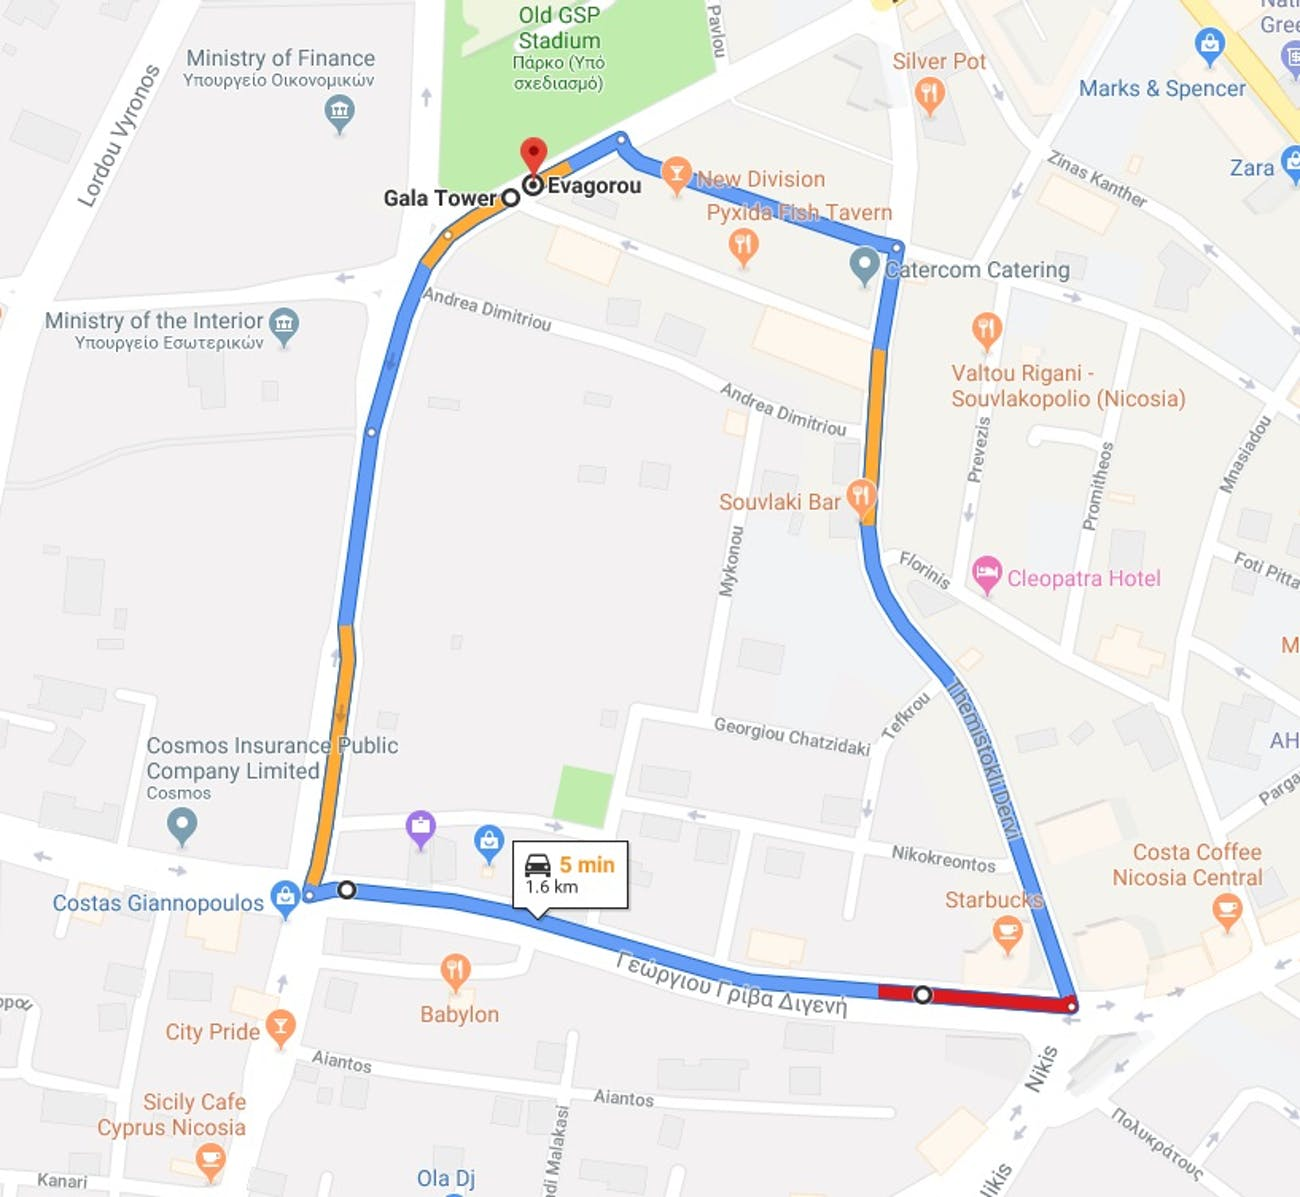 The route as laid out by the organizers.